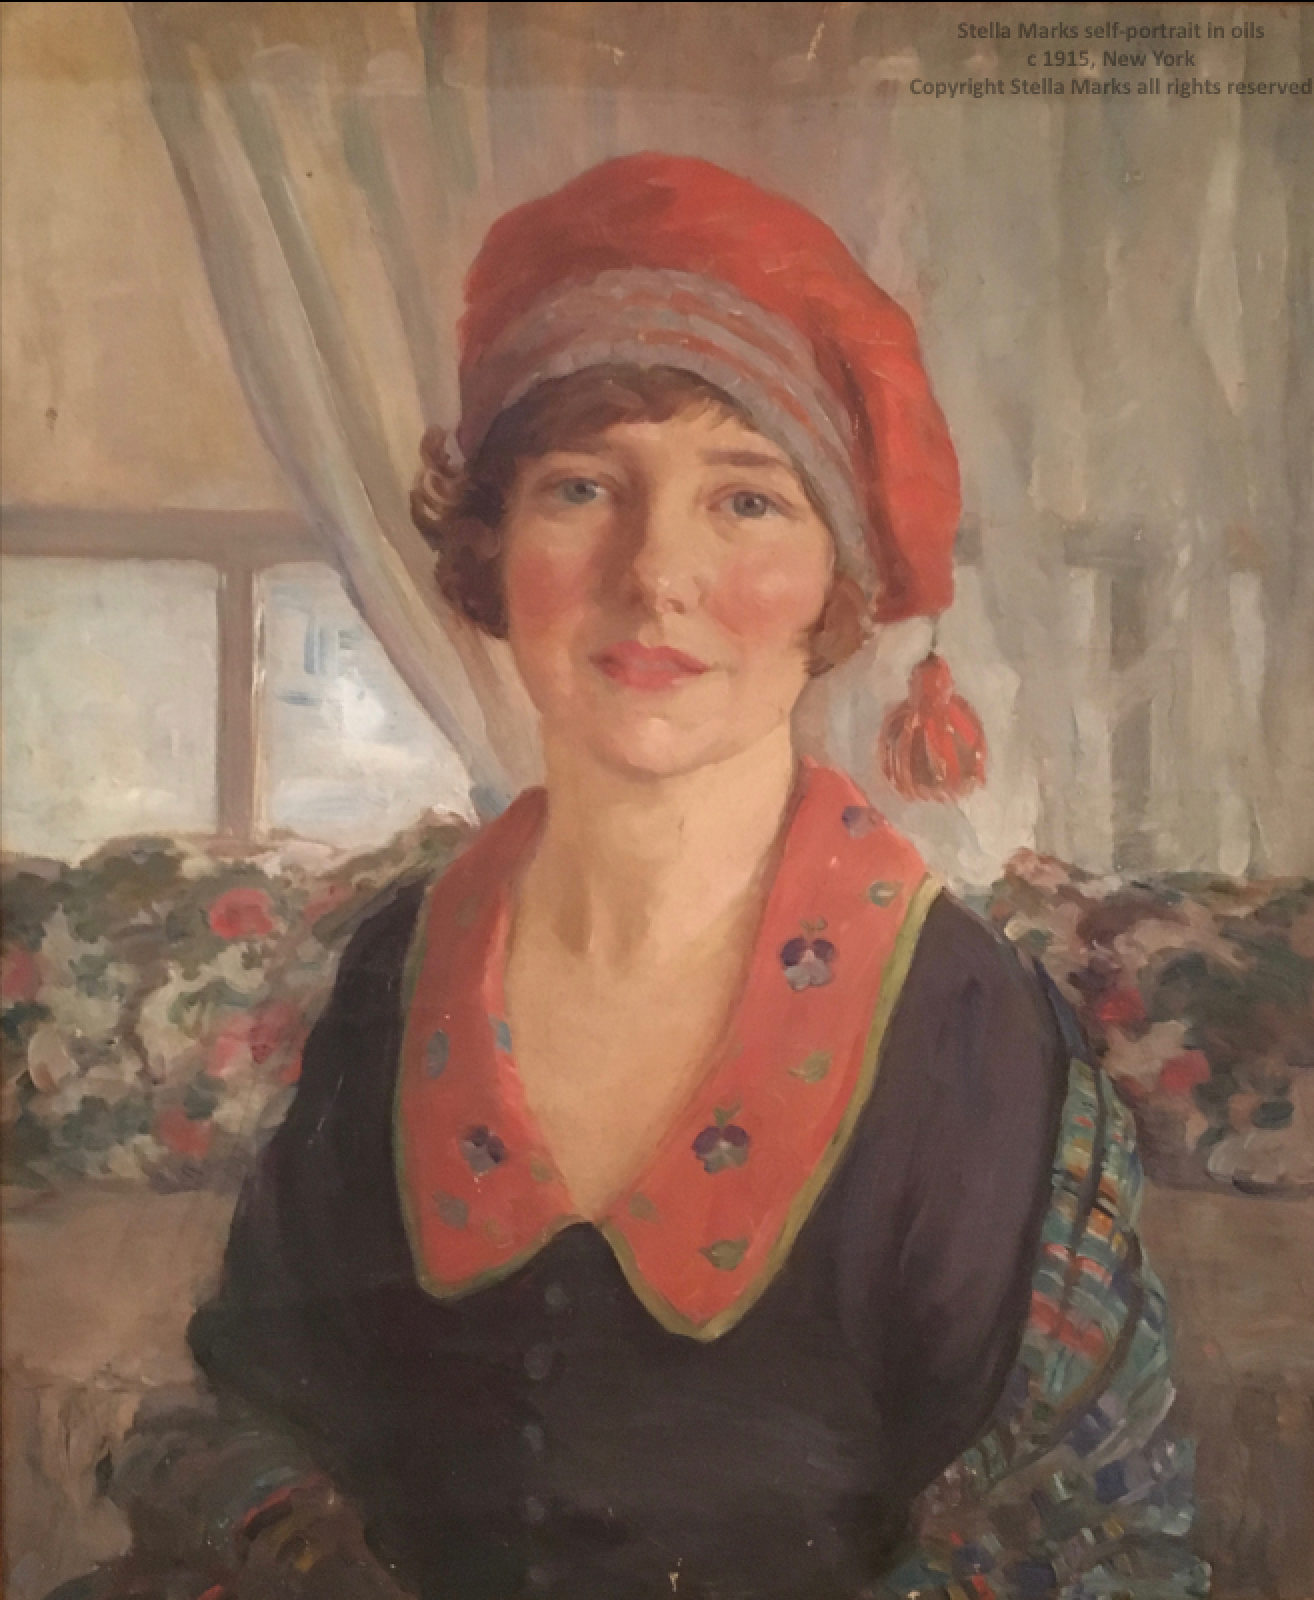 a Self-Portrait in oils by Stella Marks circa 1915. Copyright Stella Marks' Estate All rights Reserved. Private collection.